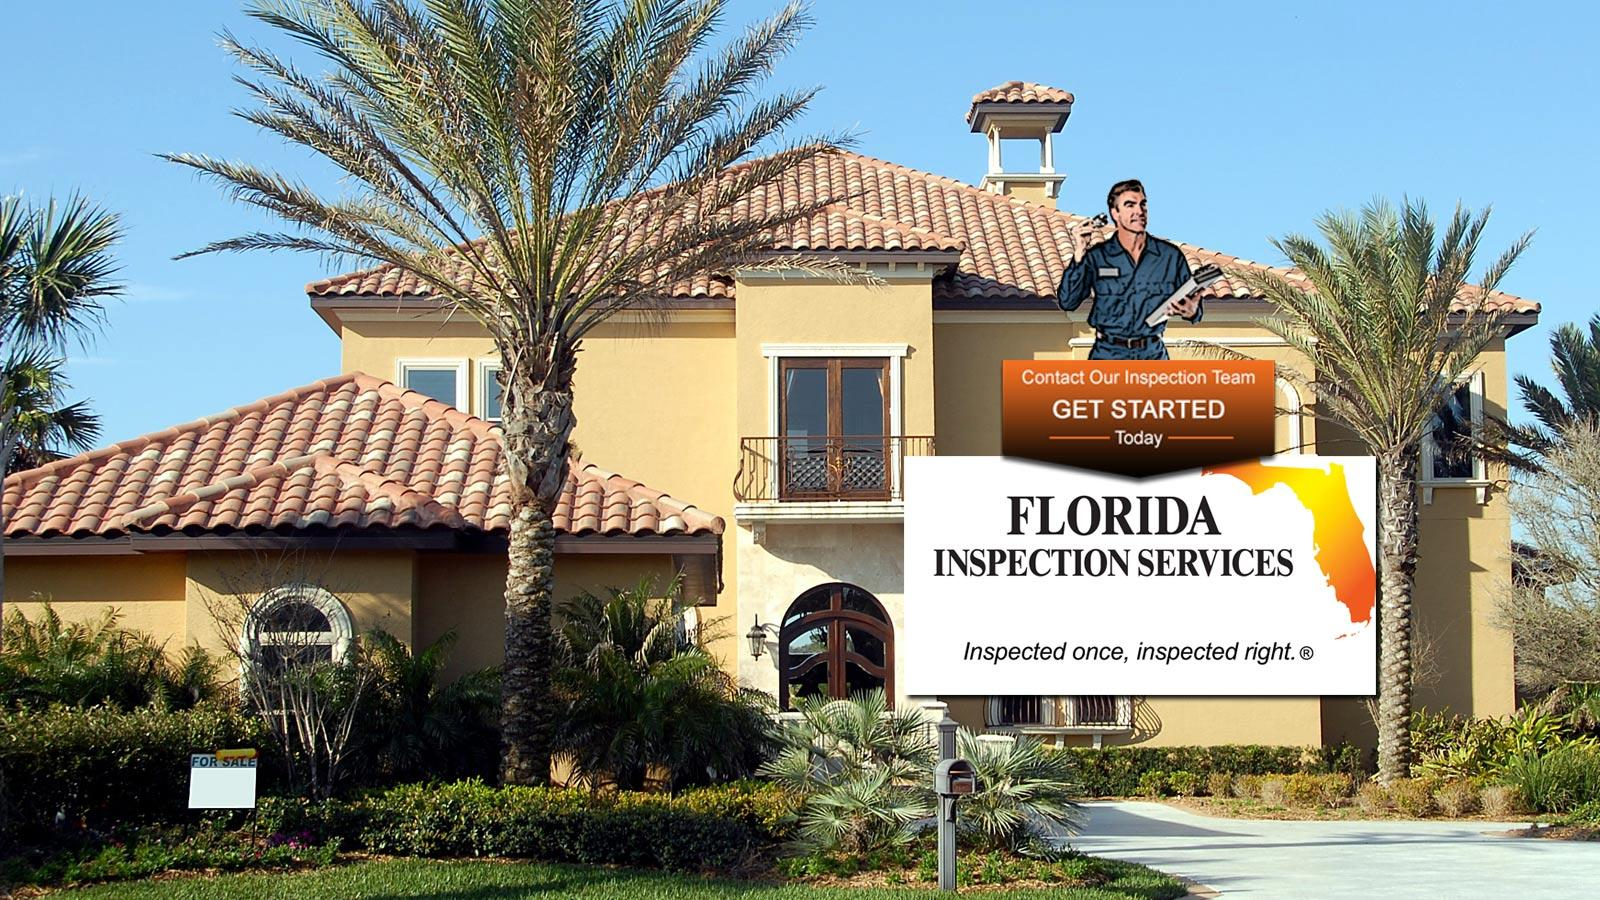 Florida Inspection Services image 3